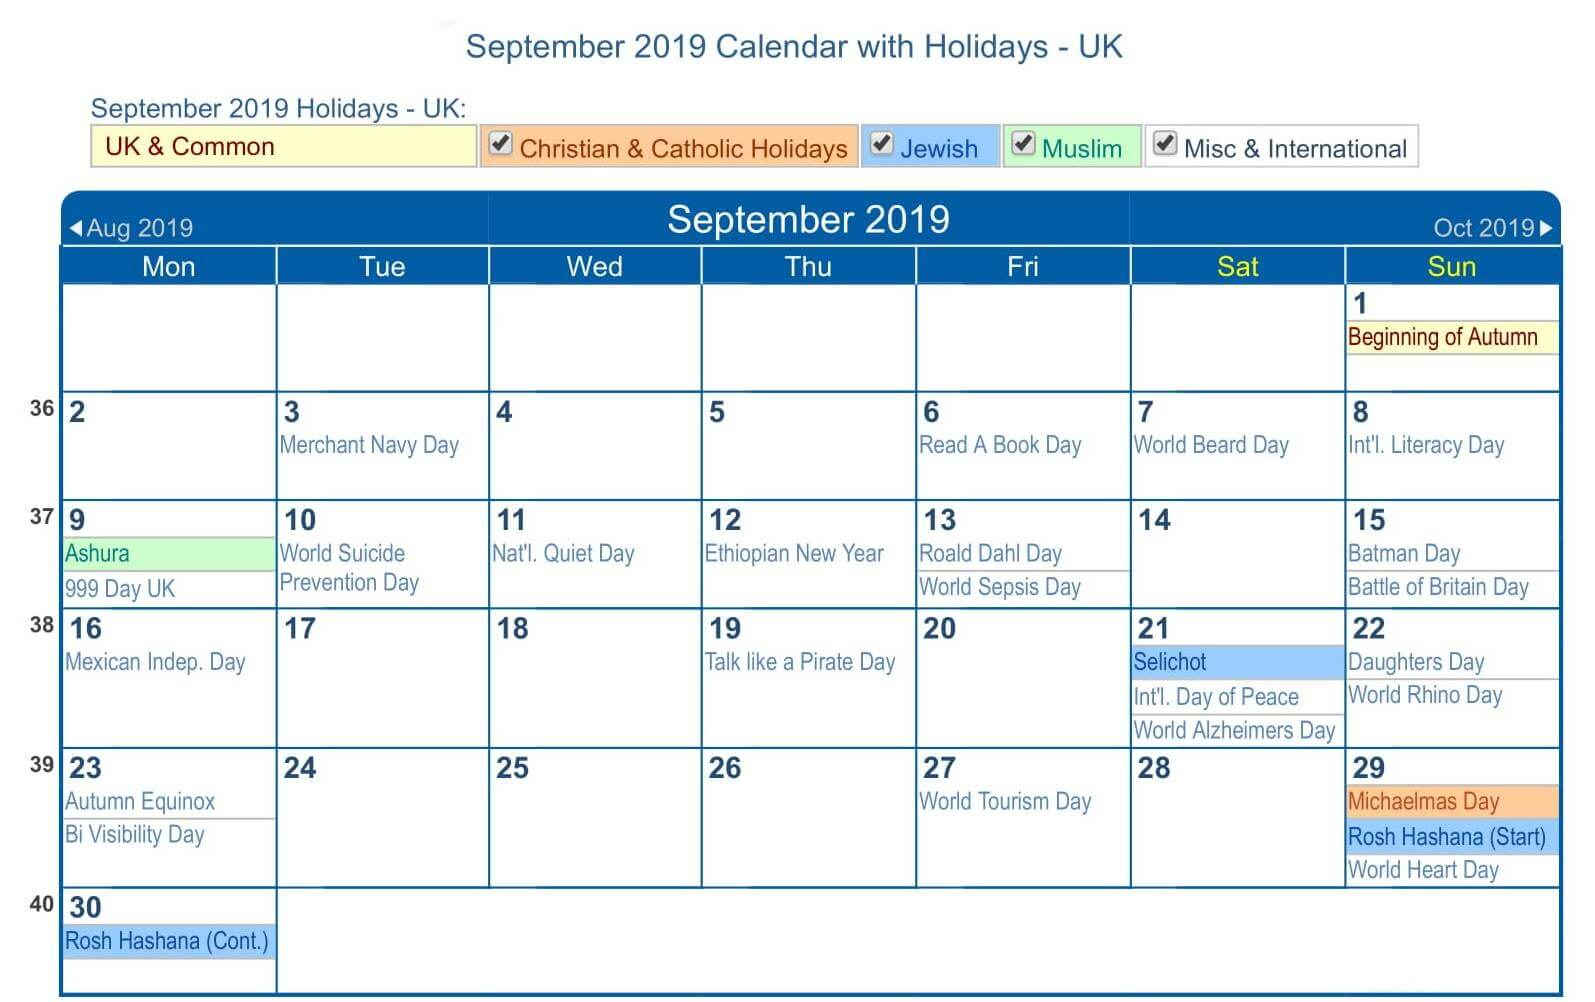 September 2019 Calendar with UK Holidays